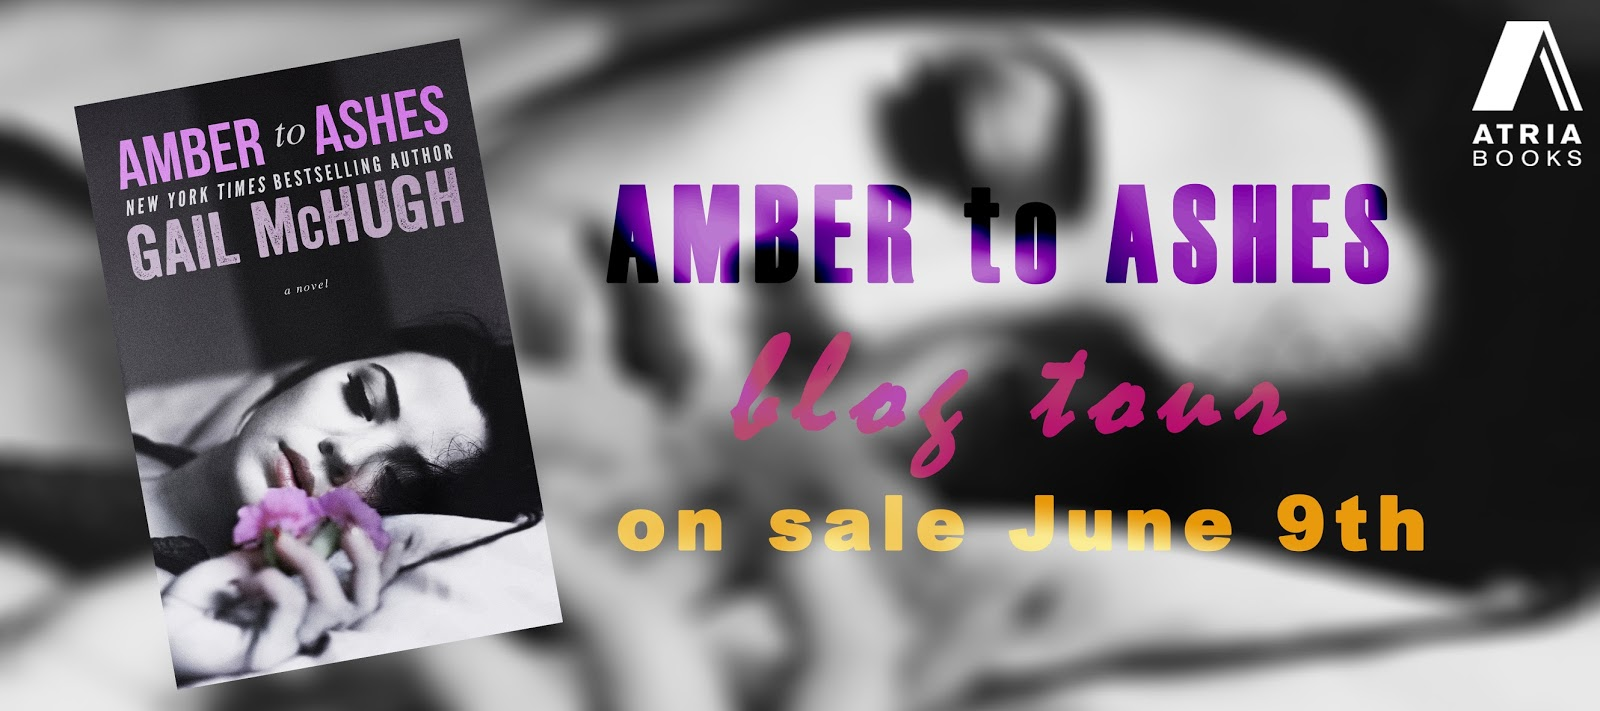 Blog Tour, Review & Giveaway – AMBER TO ASHES by Gail McHugh